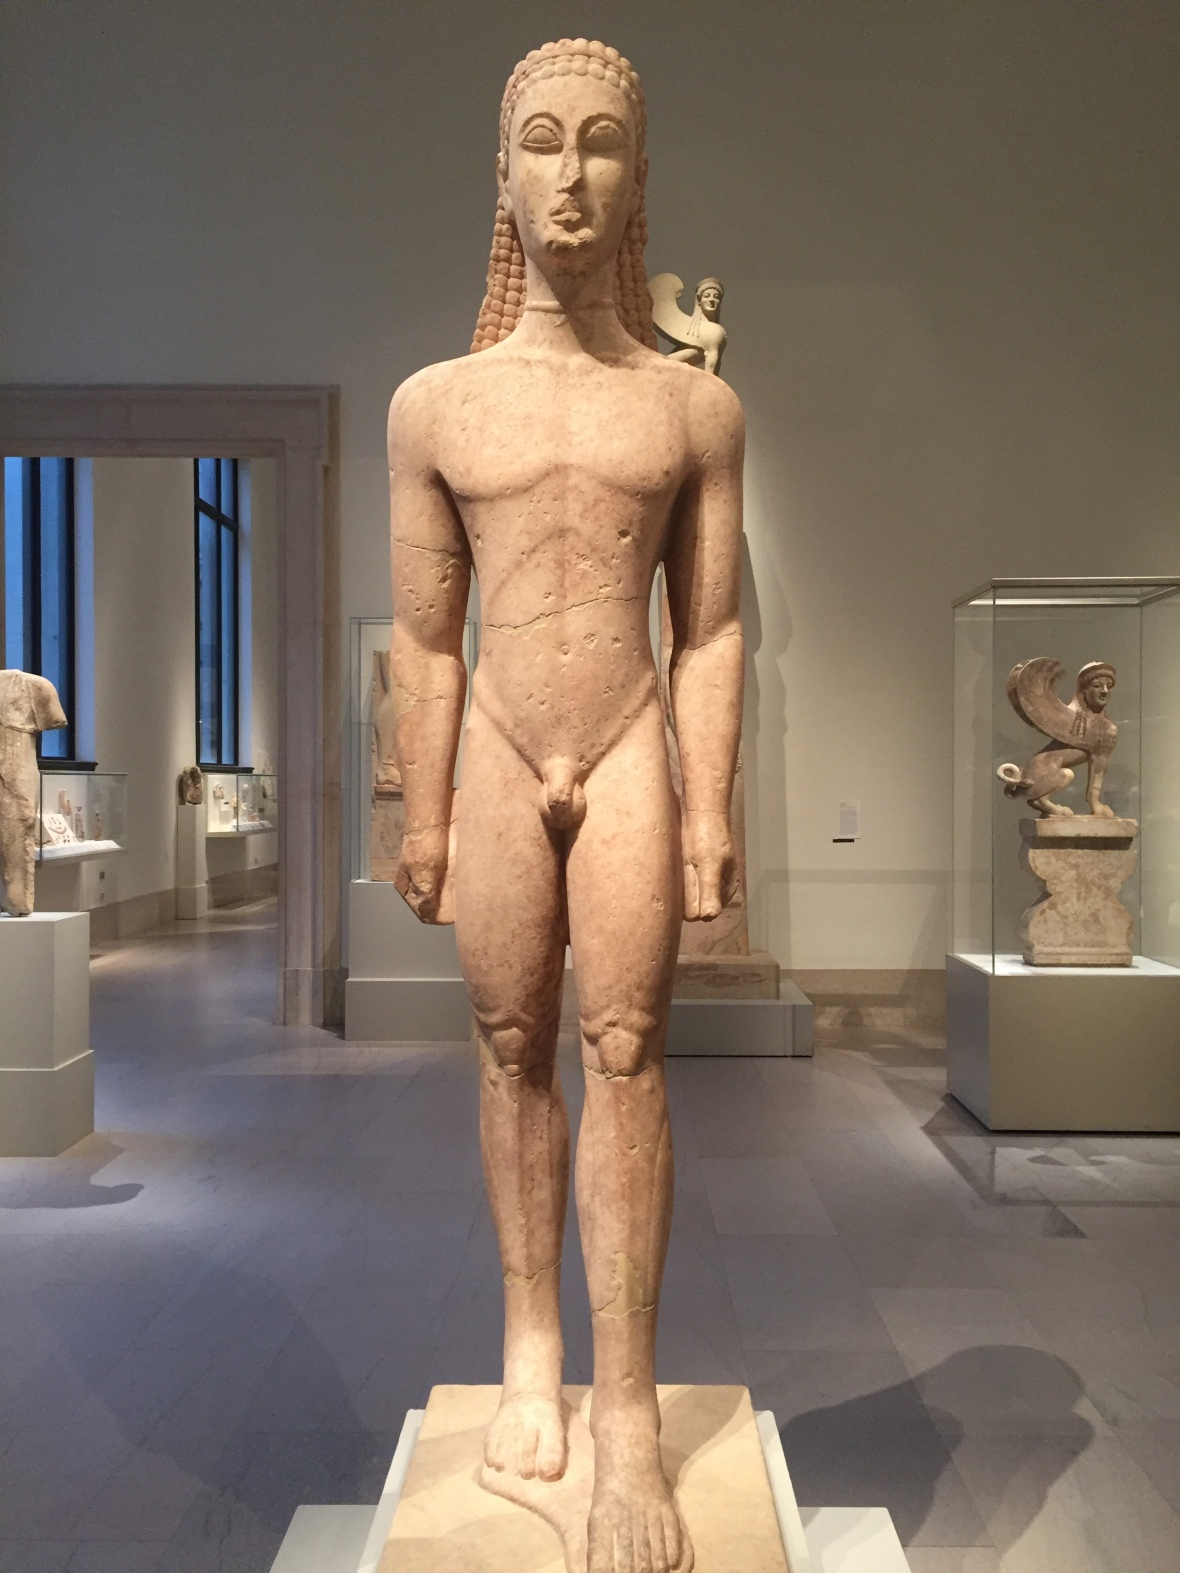 Kouros from Attica, Greece, 600 BCE